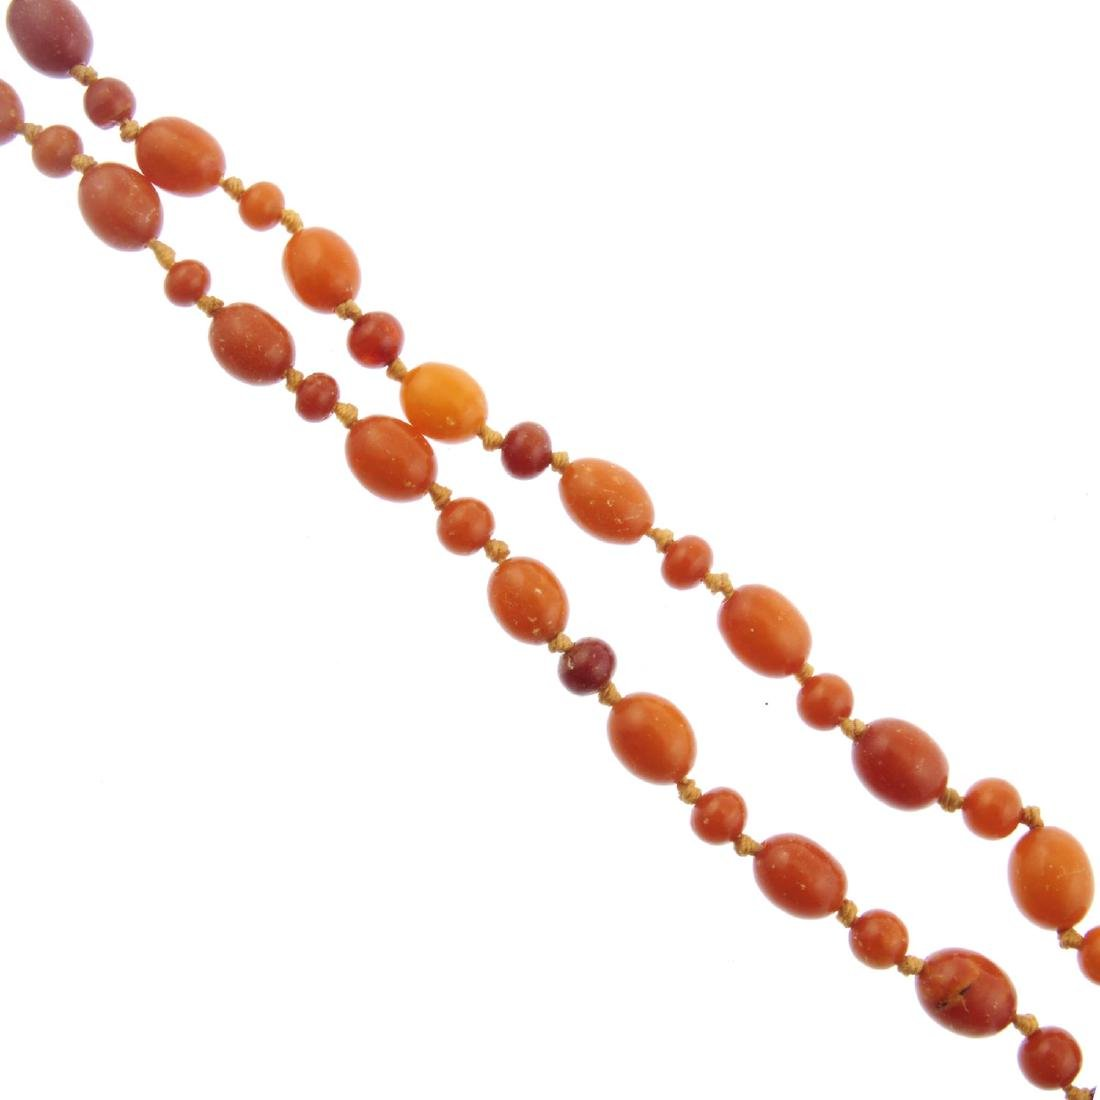 A natural amber bead necklace. Designed as near oval